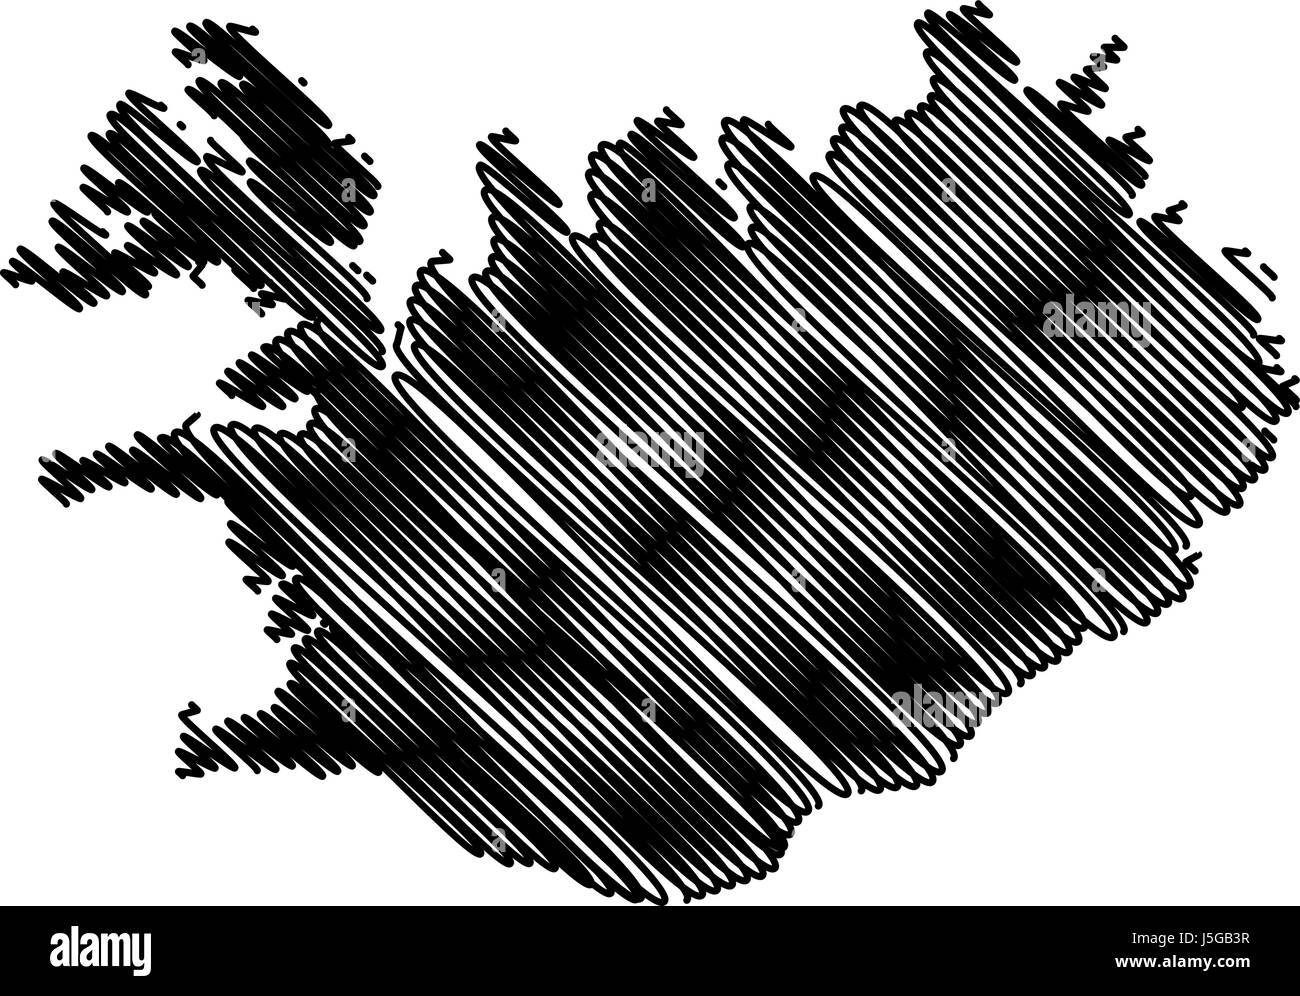 Iceland Map Outline Stock Vector Images - Alamy